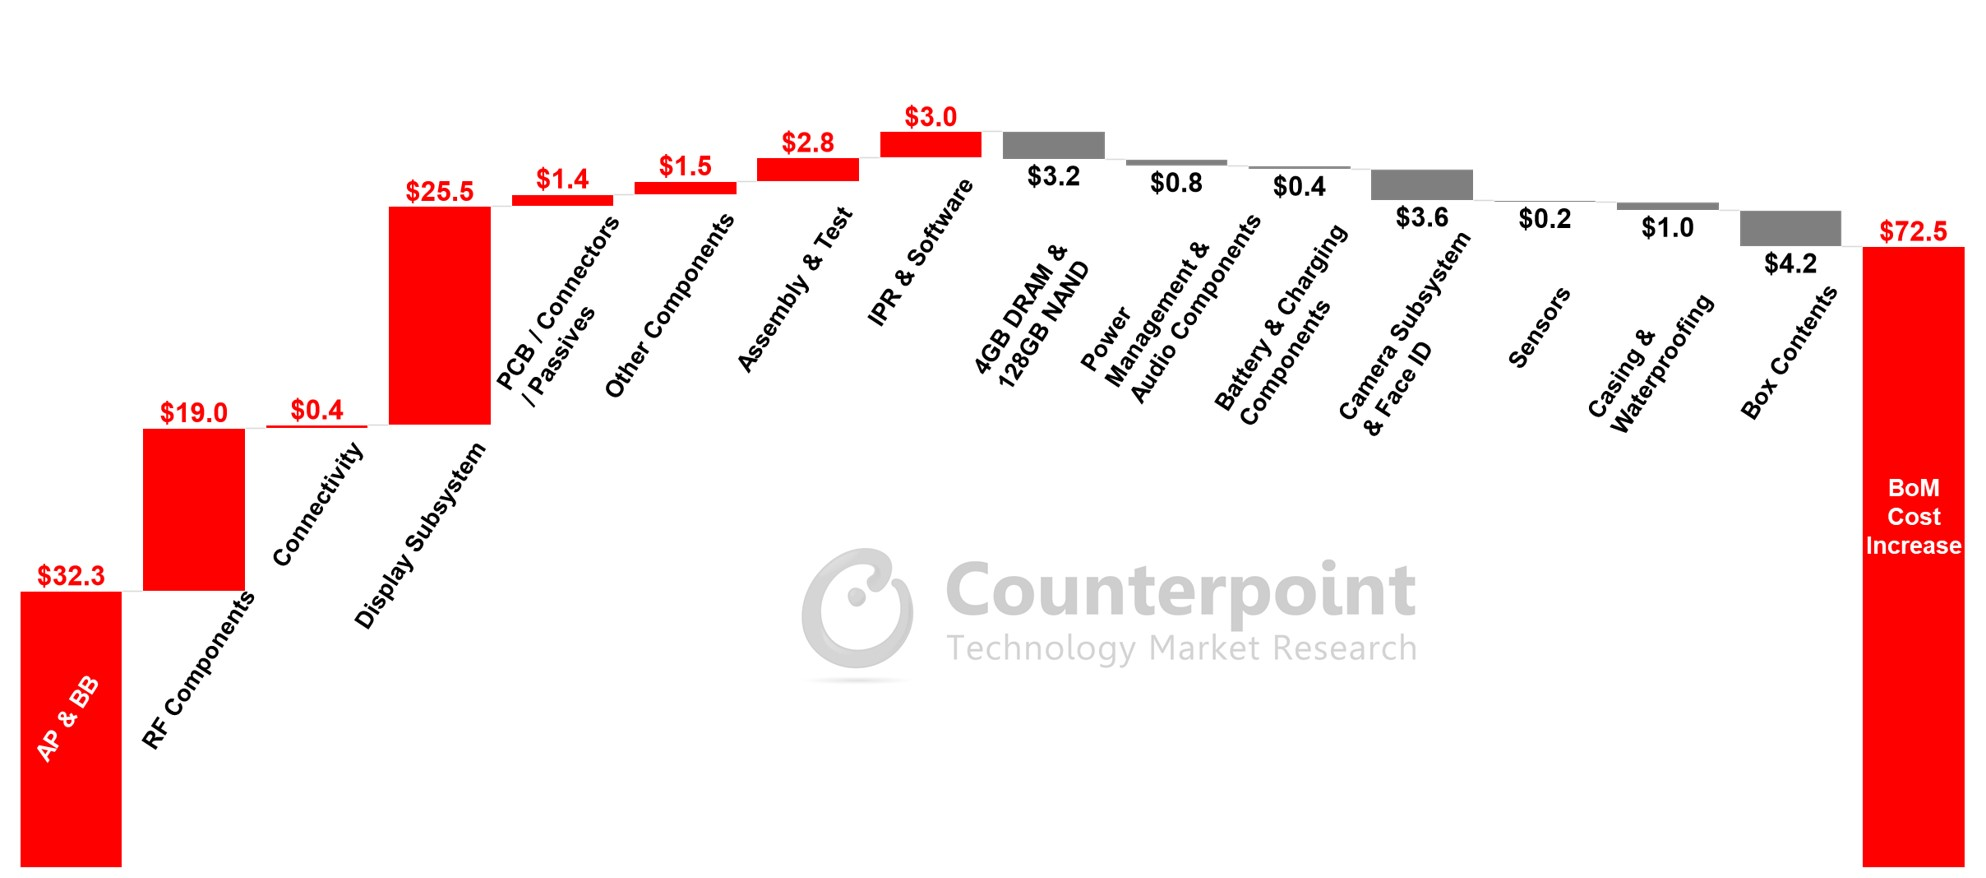 Counterpoint Research iPhone 12 BoM Cost Increase Over iPhone 11